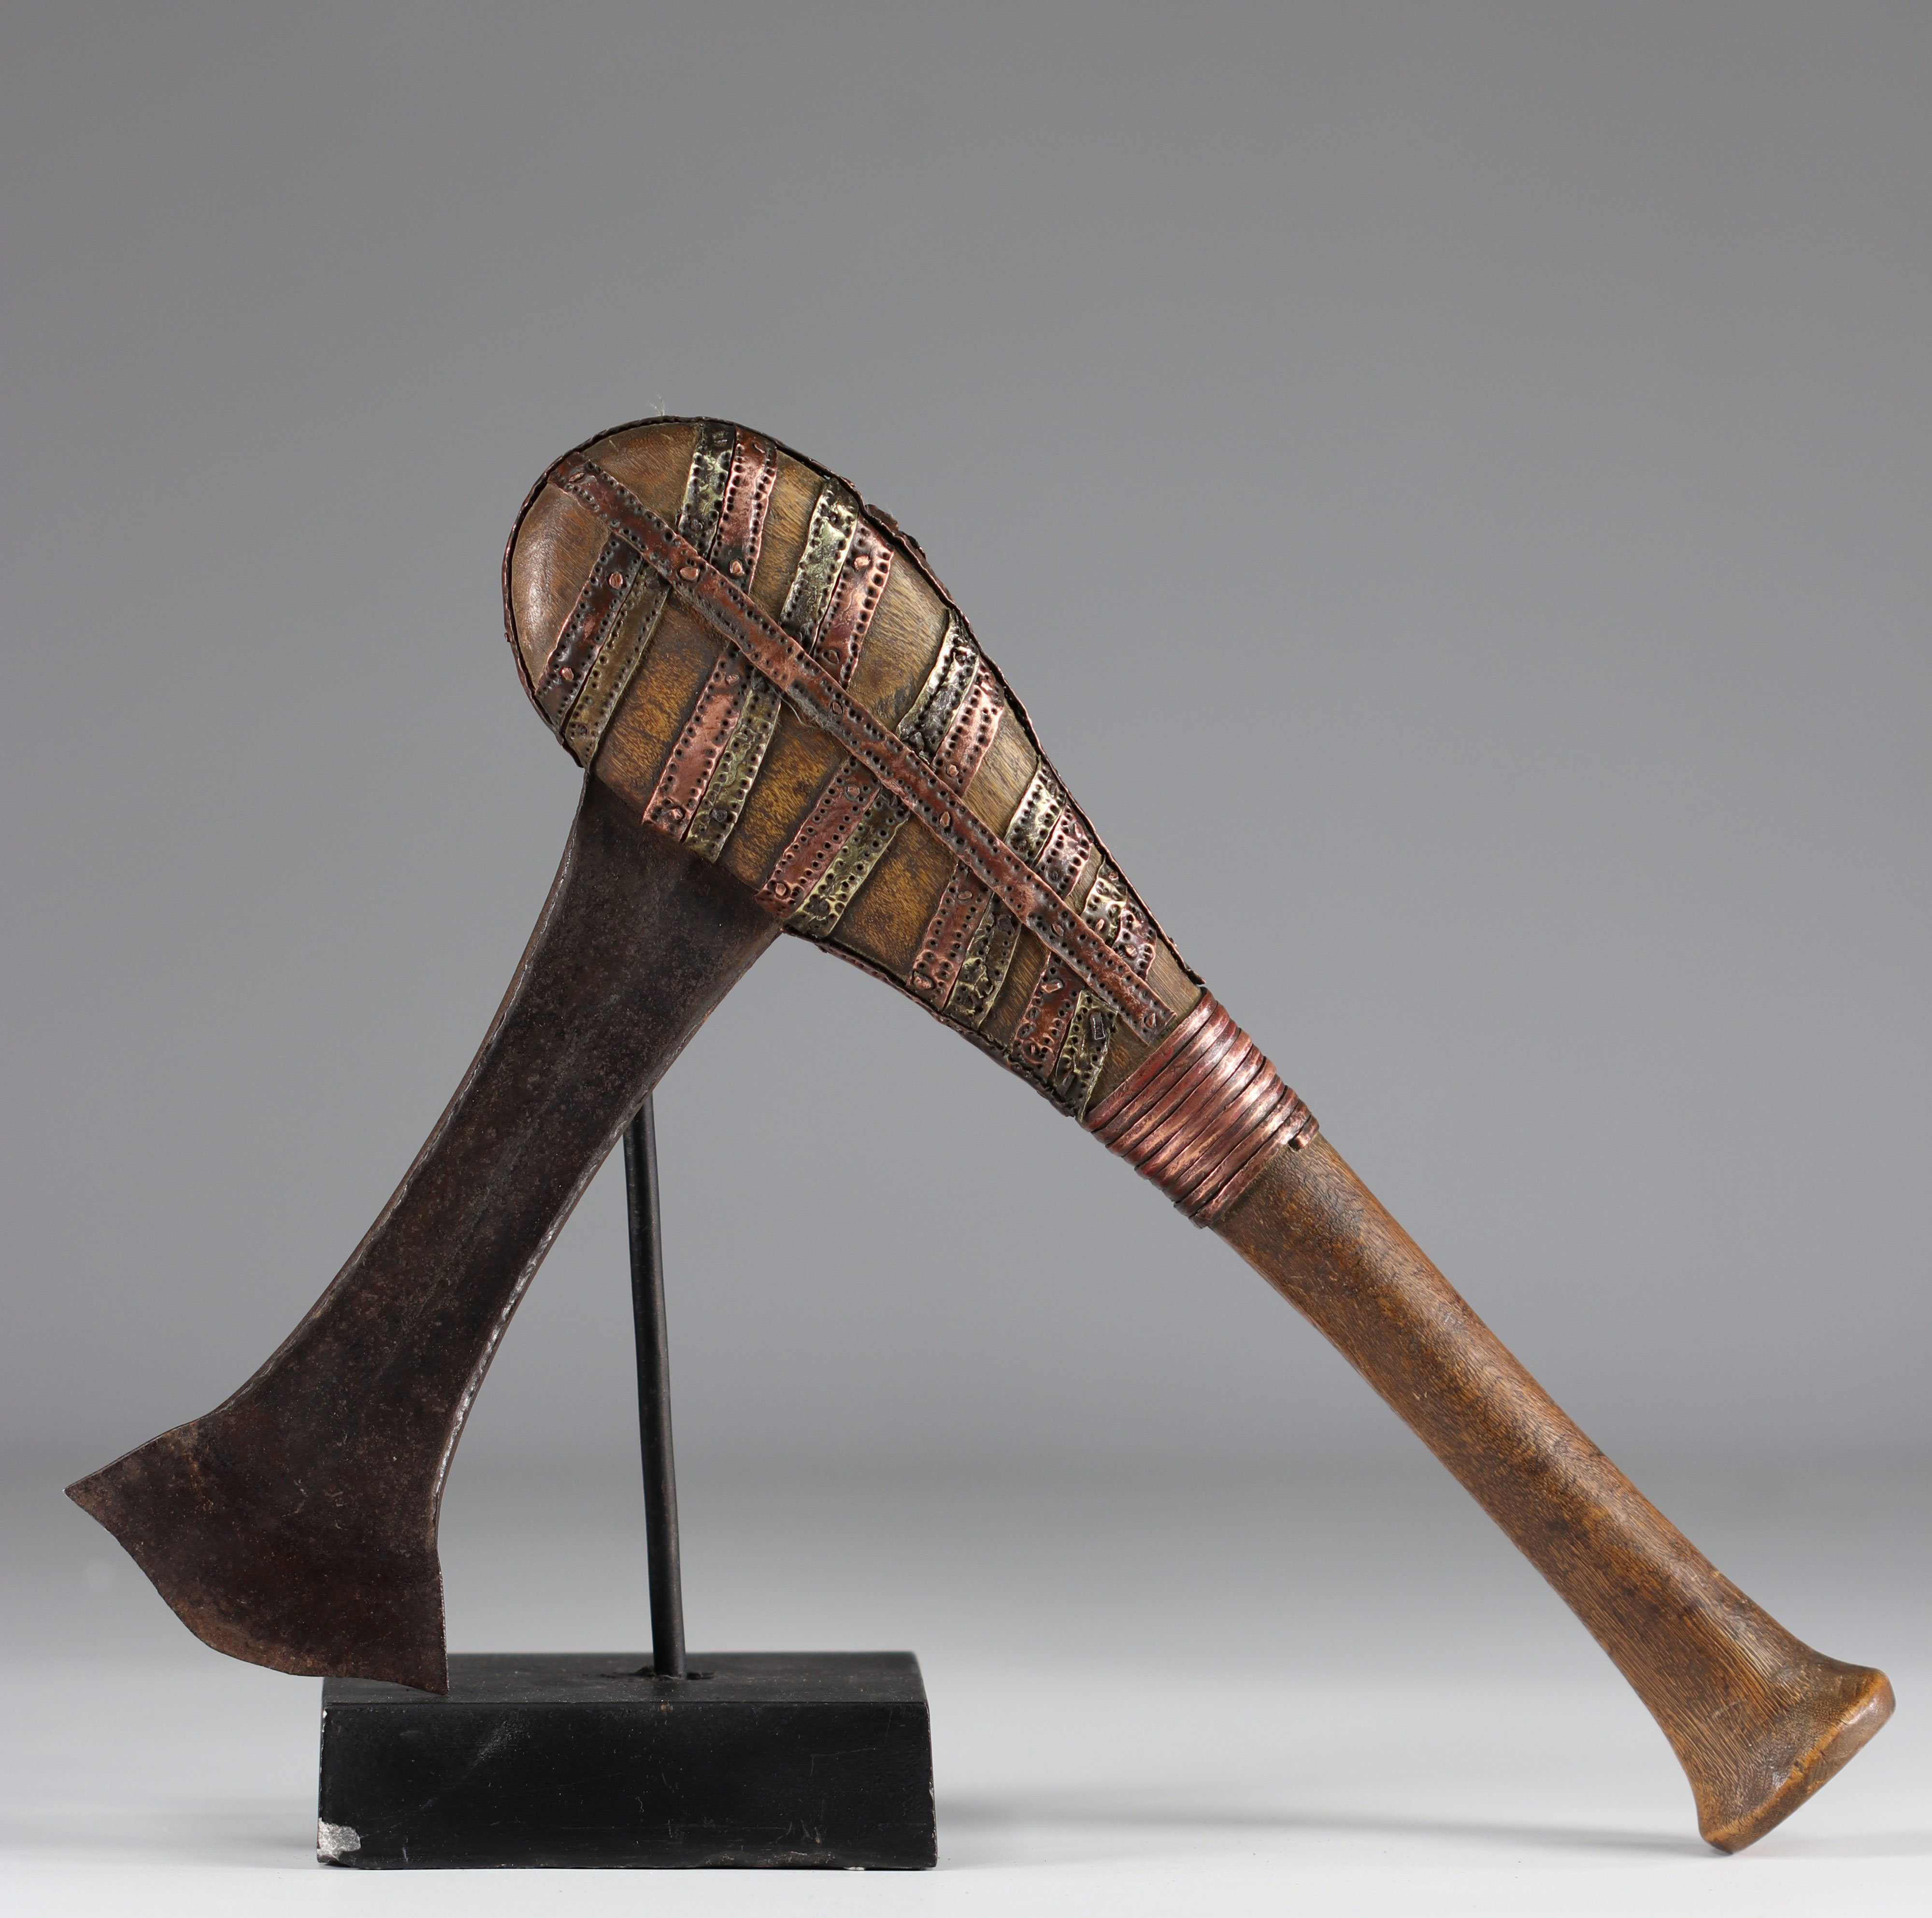 Tchokwe ax - early 20th century - DRC - Africa - Image 2 of 2